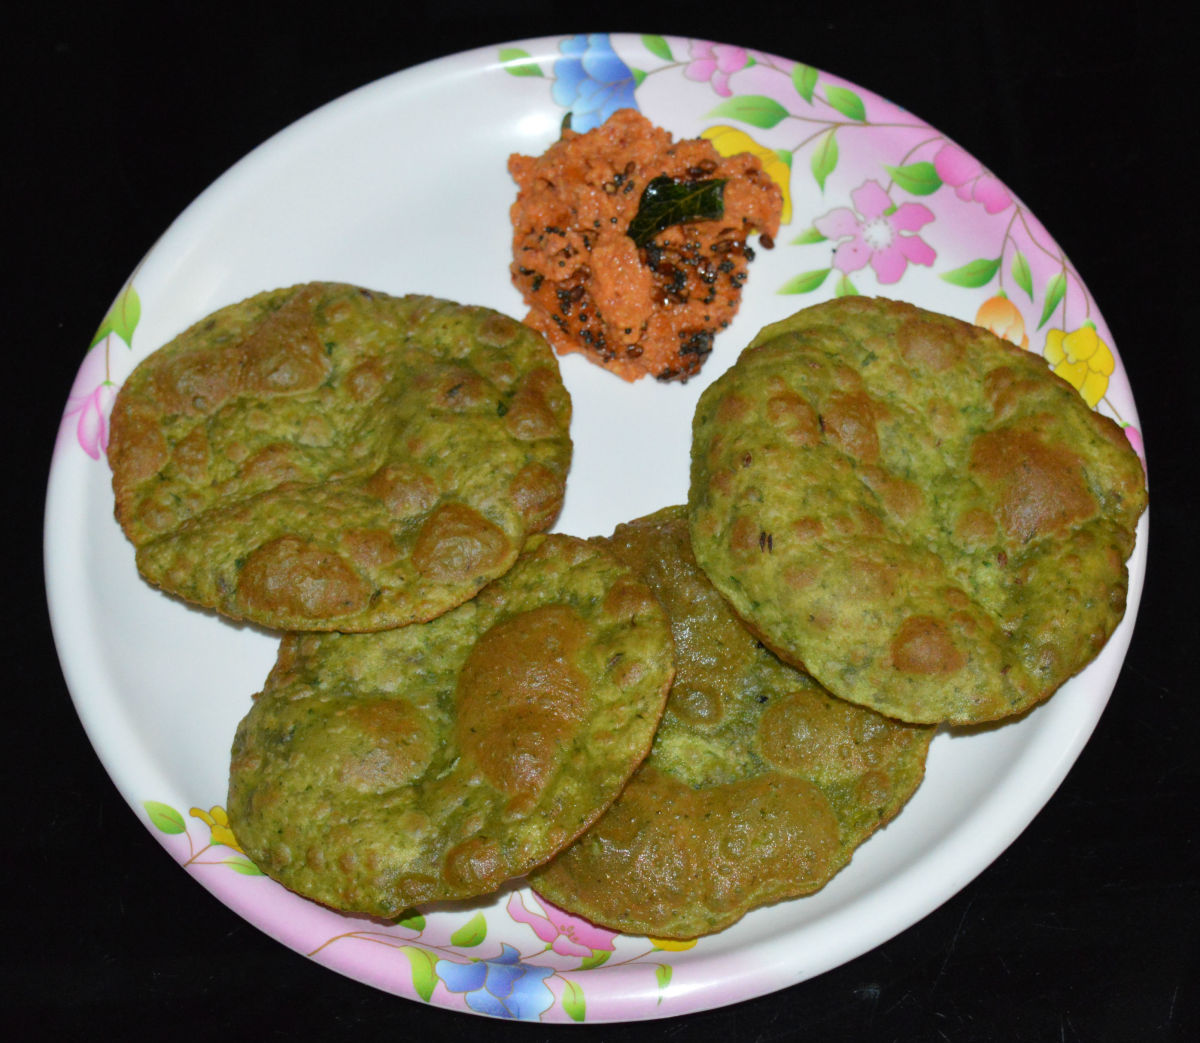 Step four: Serve hot puris with a spicy chutney or with a savory curry/bhaji. Enjoy this delightful combo!